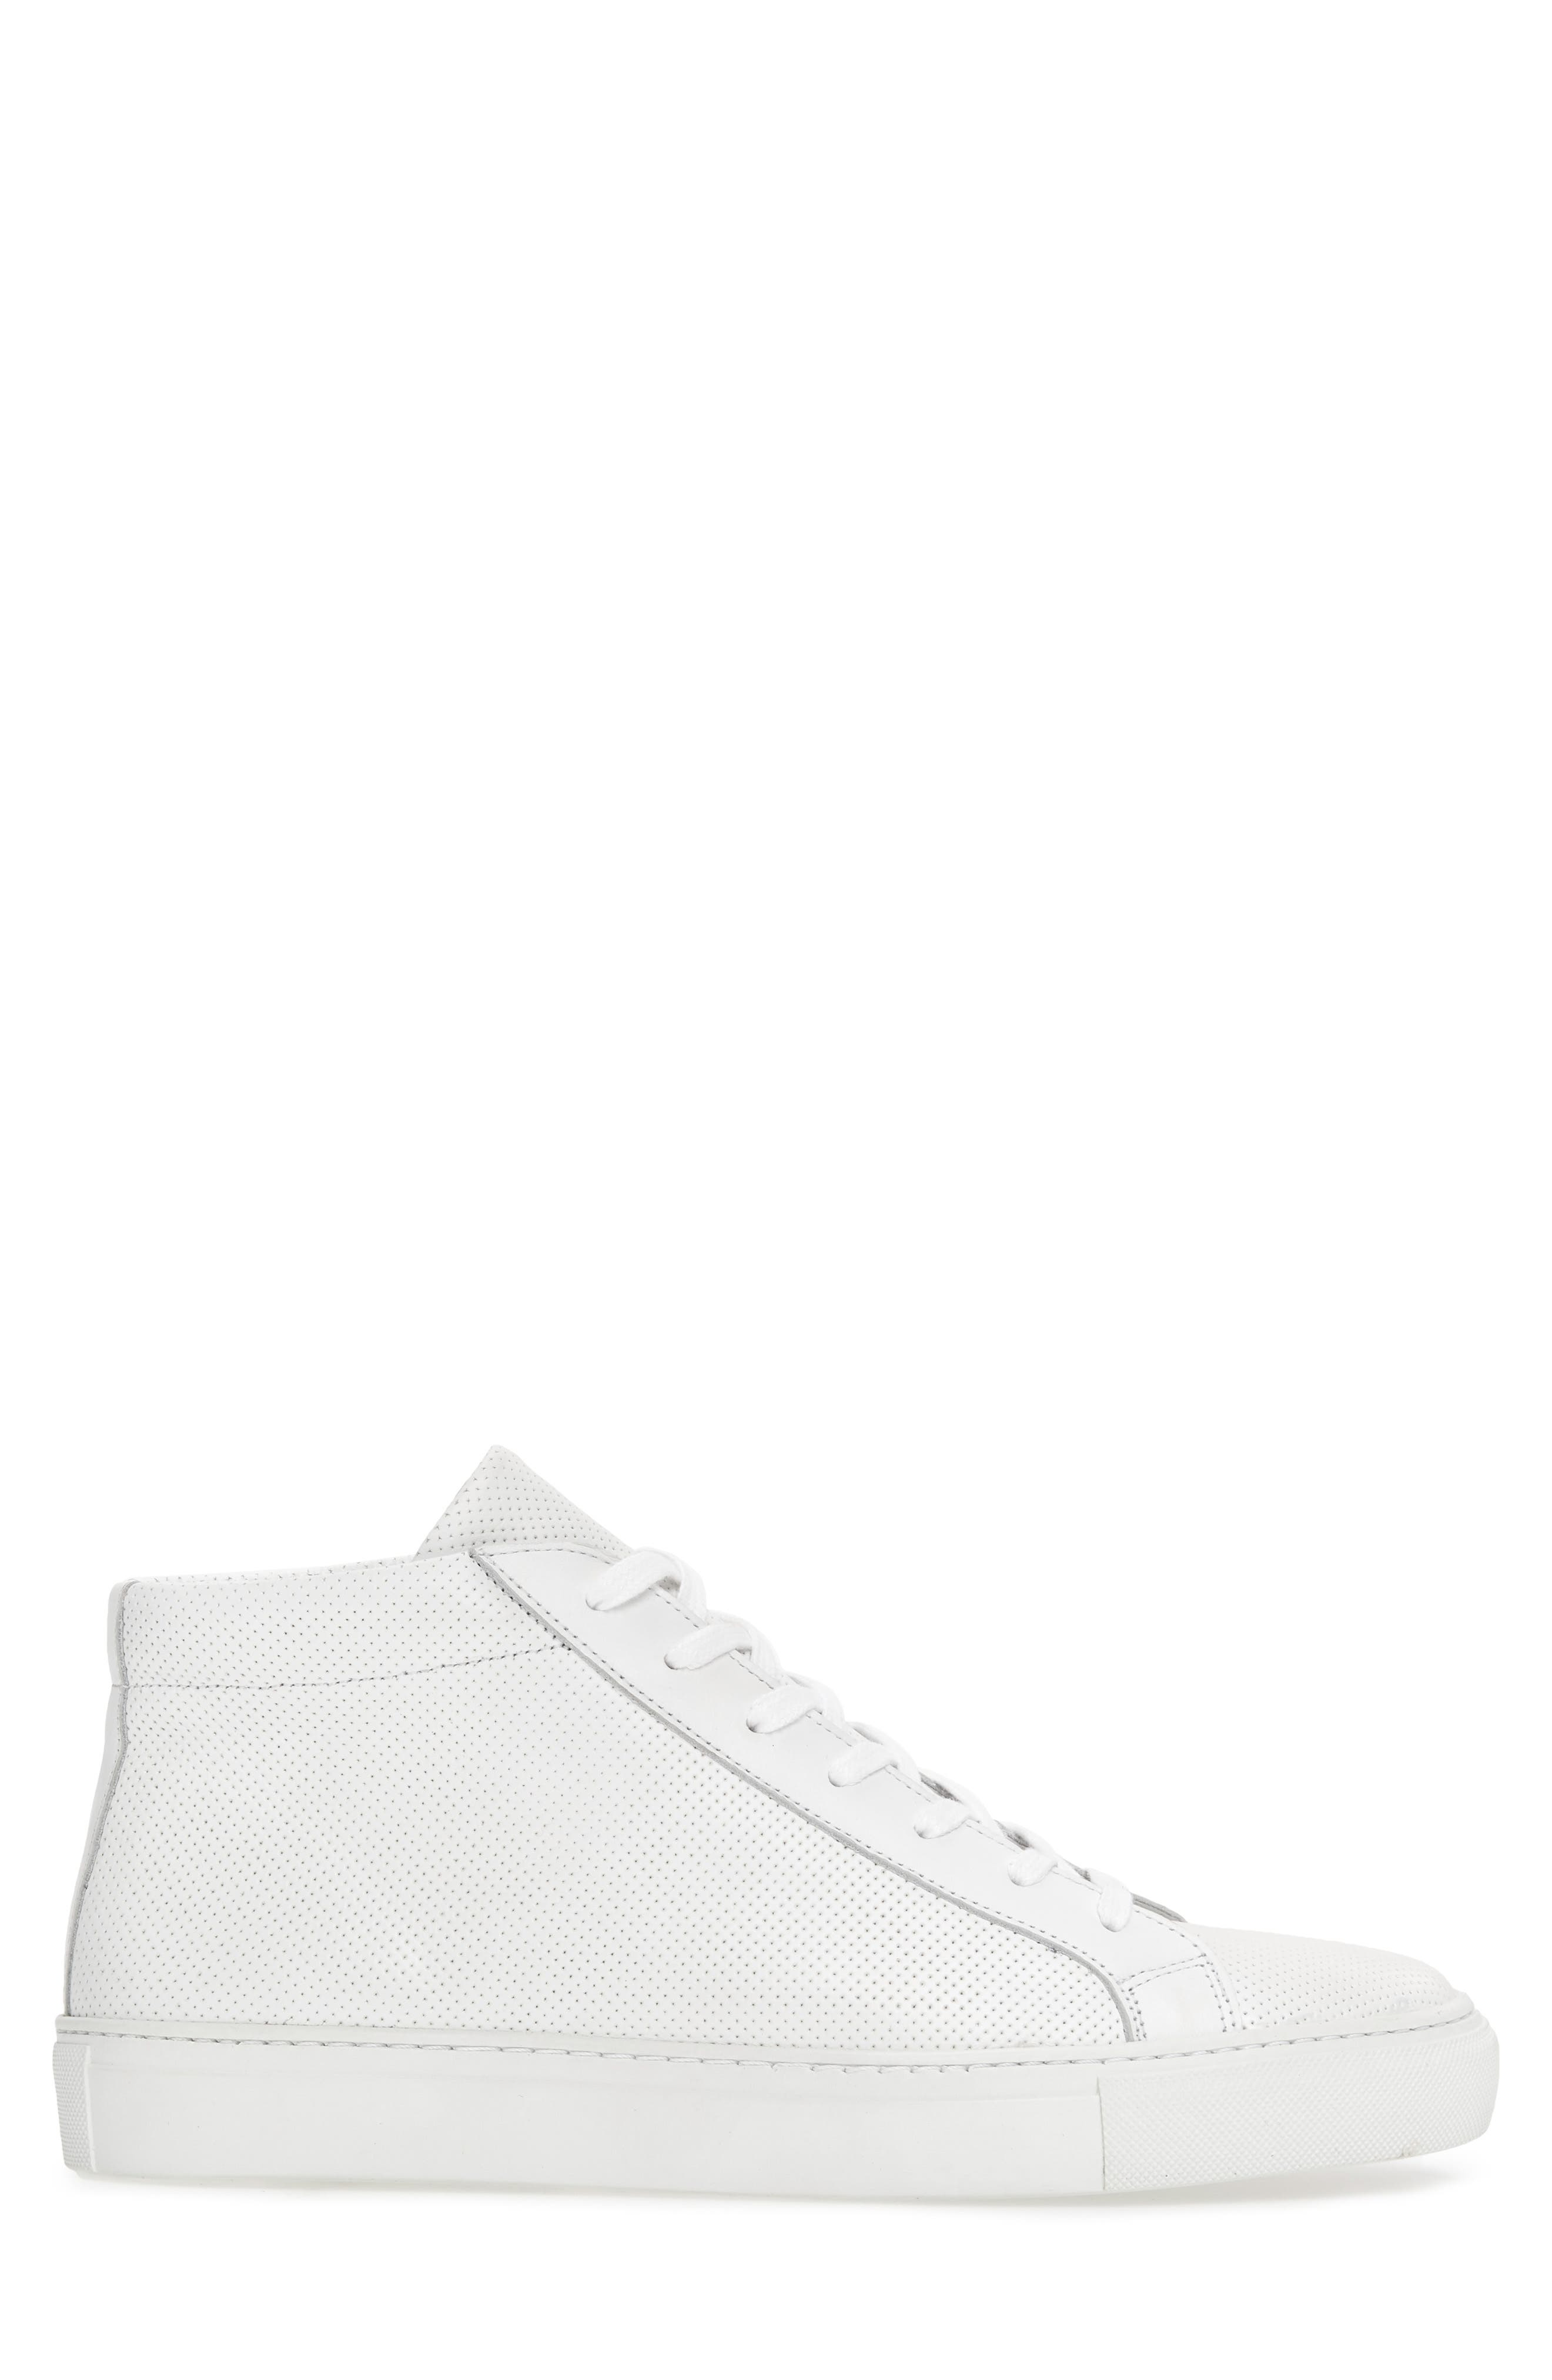 Deacon Mid Sneaker,                             Alternate thumbnail 3, color,                             WHITE PERFORATED LEATHER